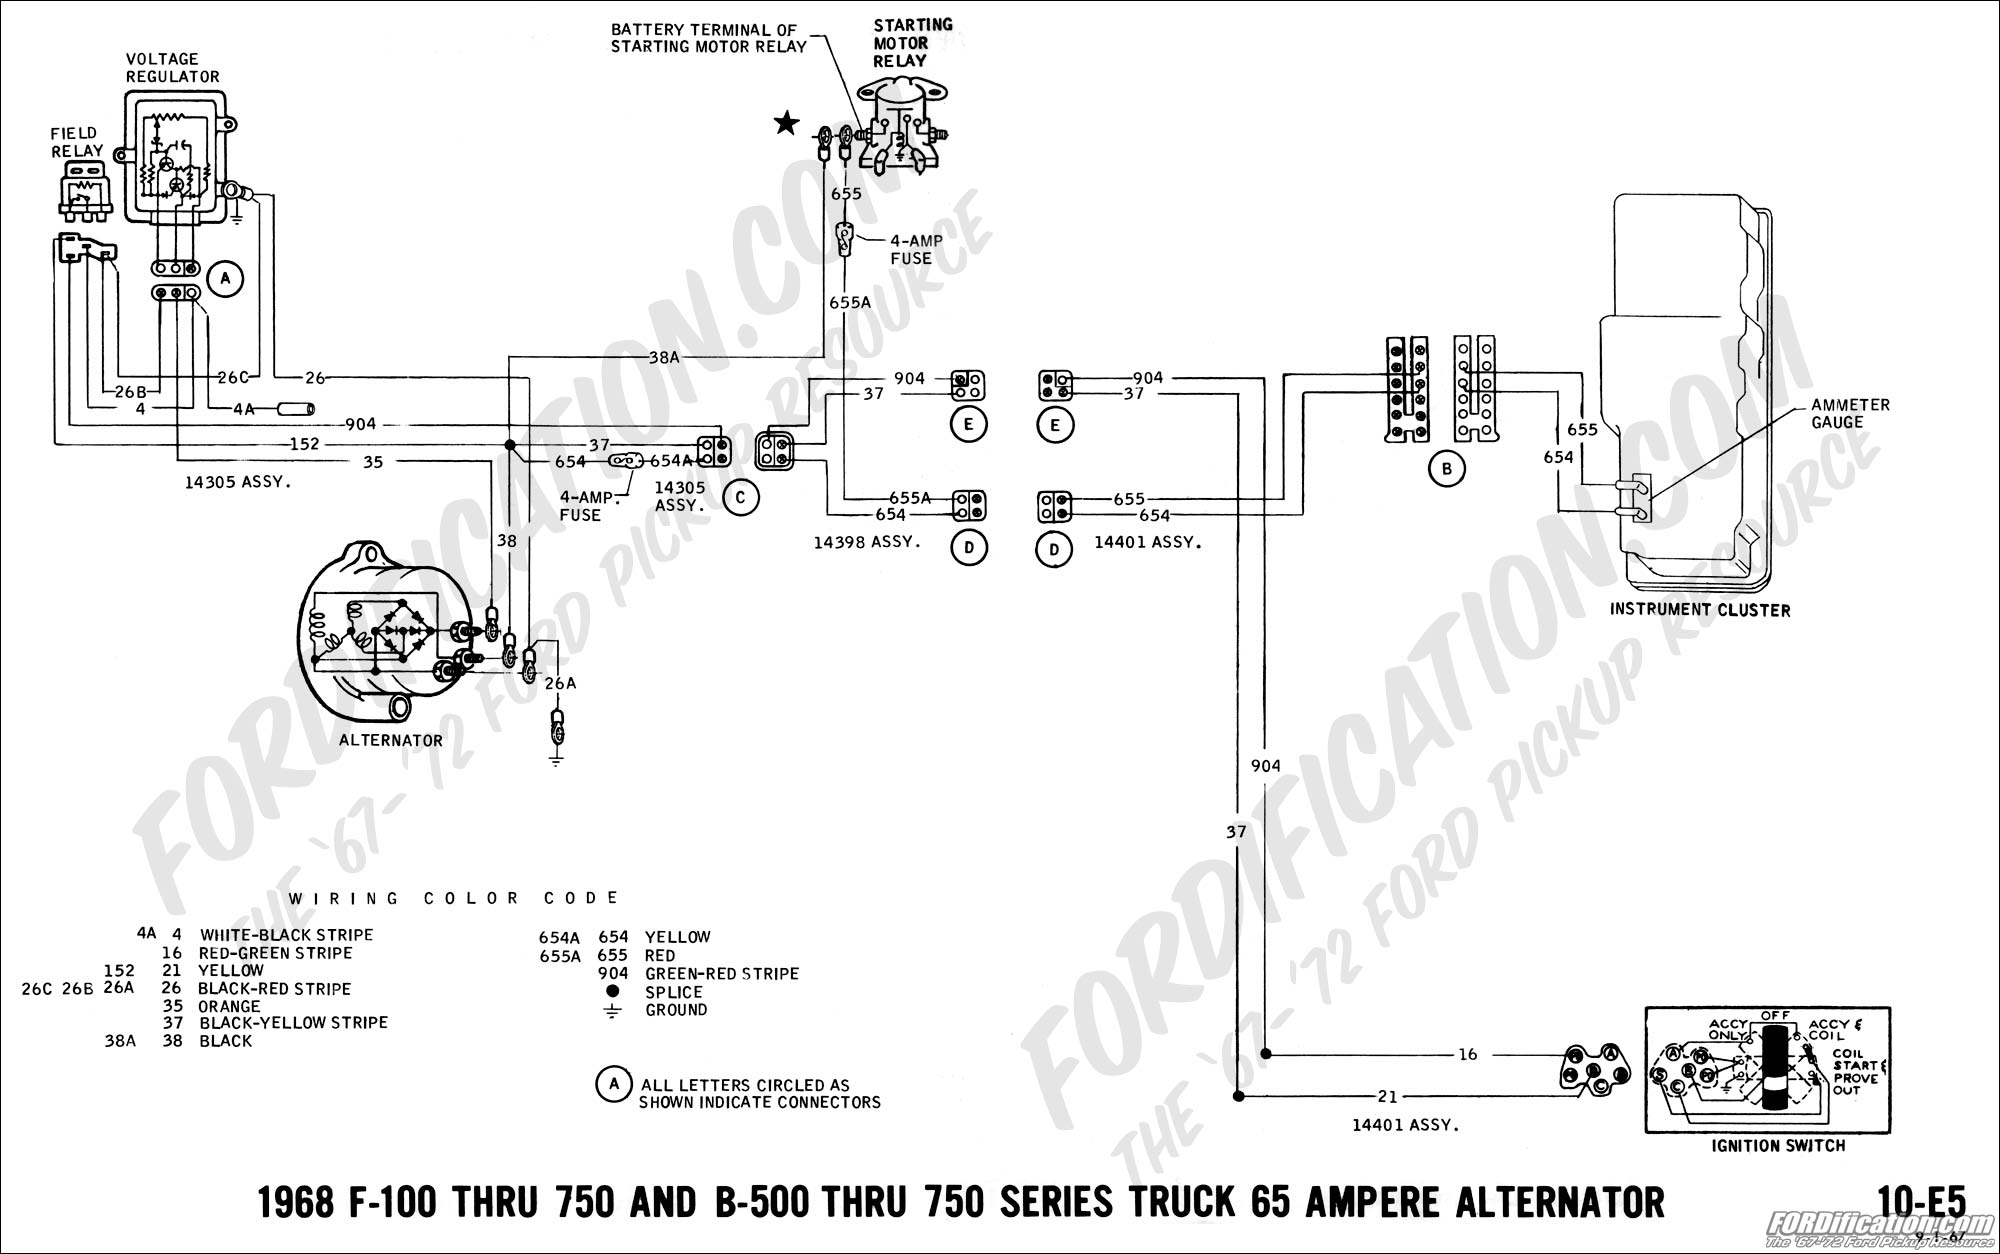 1967 Ford F100 Alternator Wiring Diagram Detailed Schematics 1994 Dodge Ram Electrical Schematic 1971 390 Engine